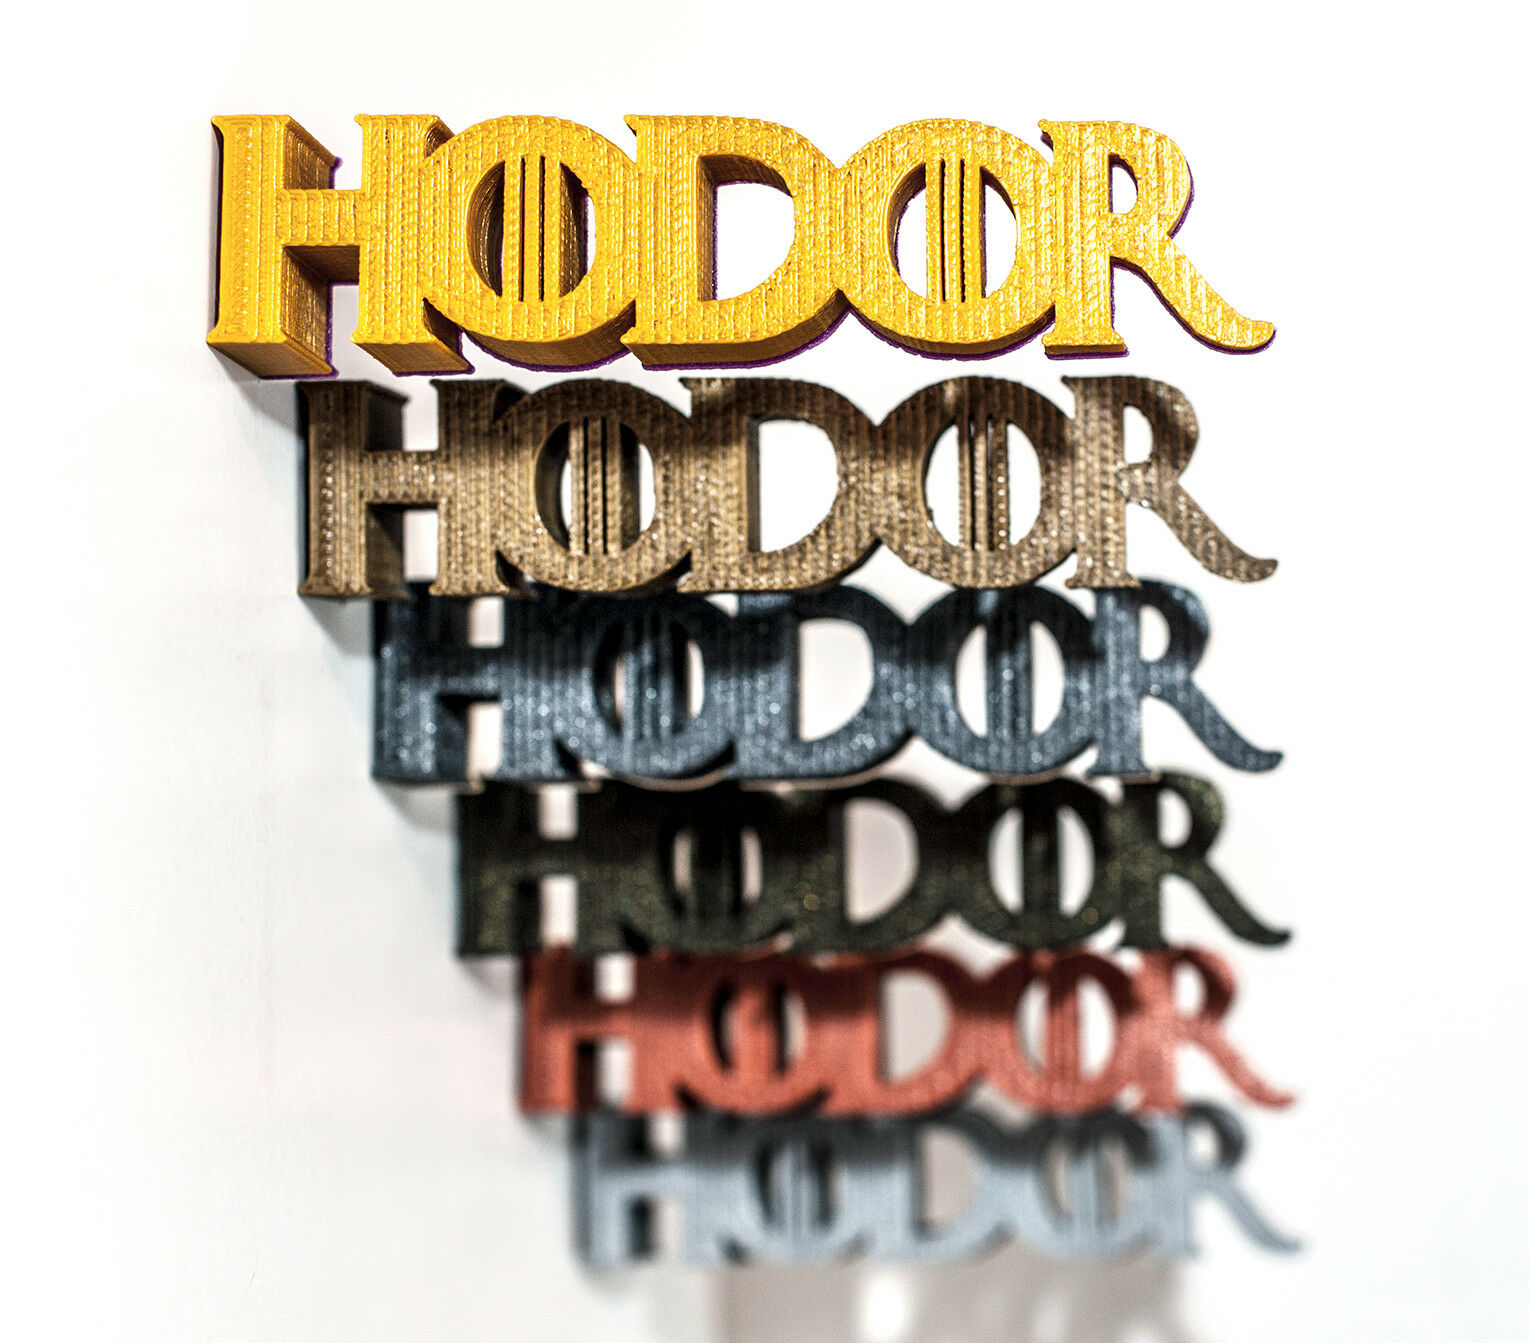 Hodor Door Stop Doorstop Stopper Wedge, Game Of Thrones Inspirot - (set of 6)